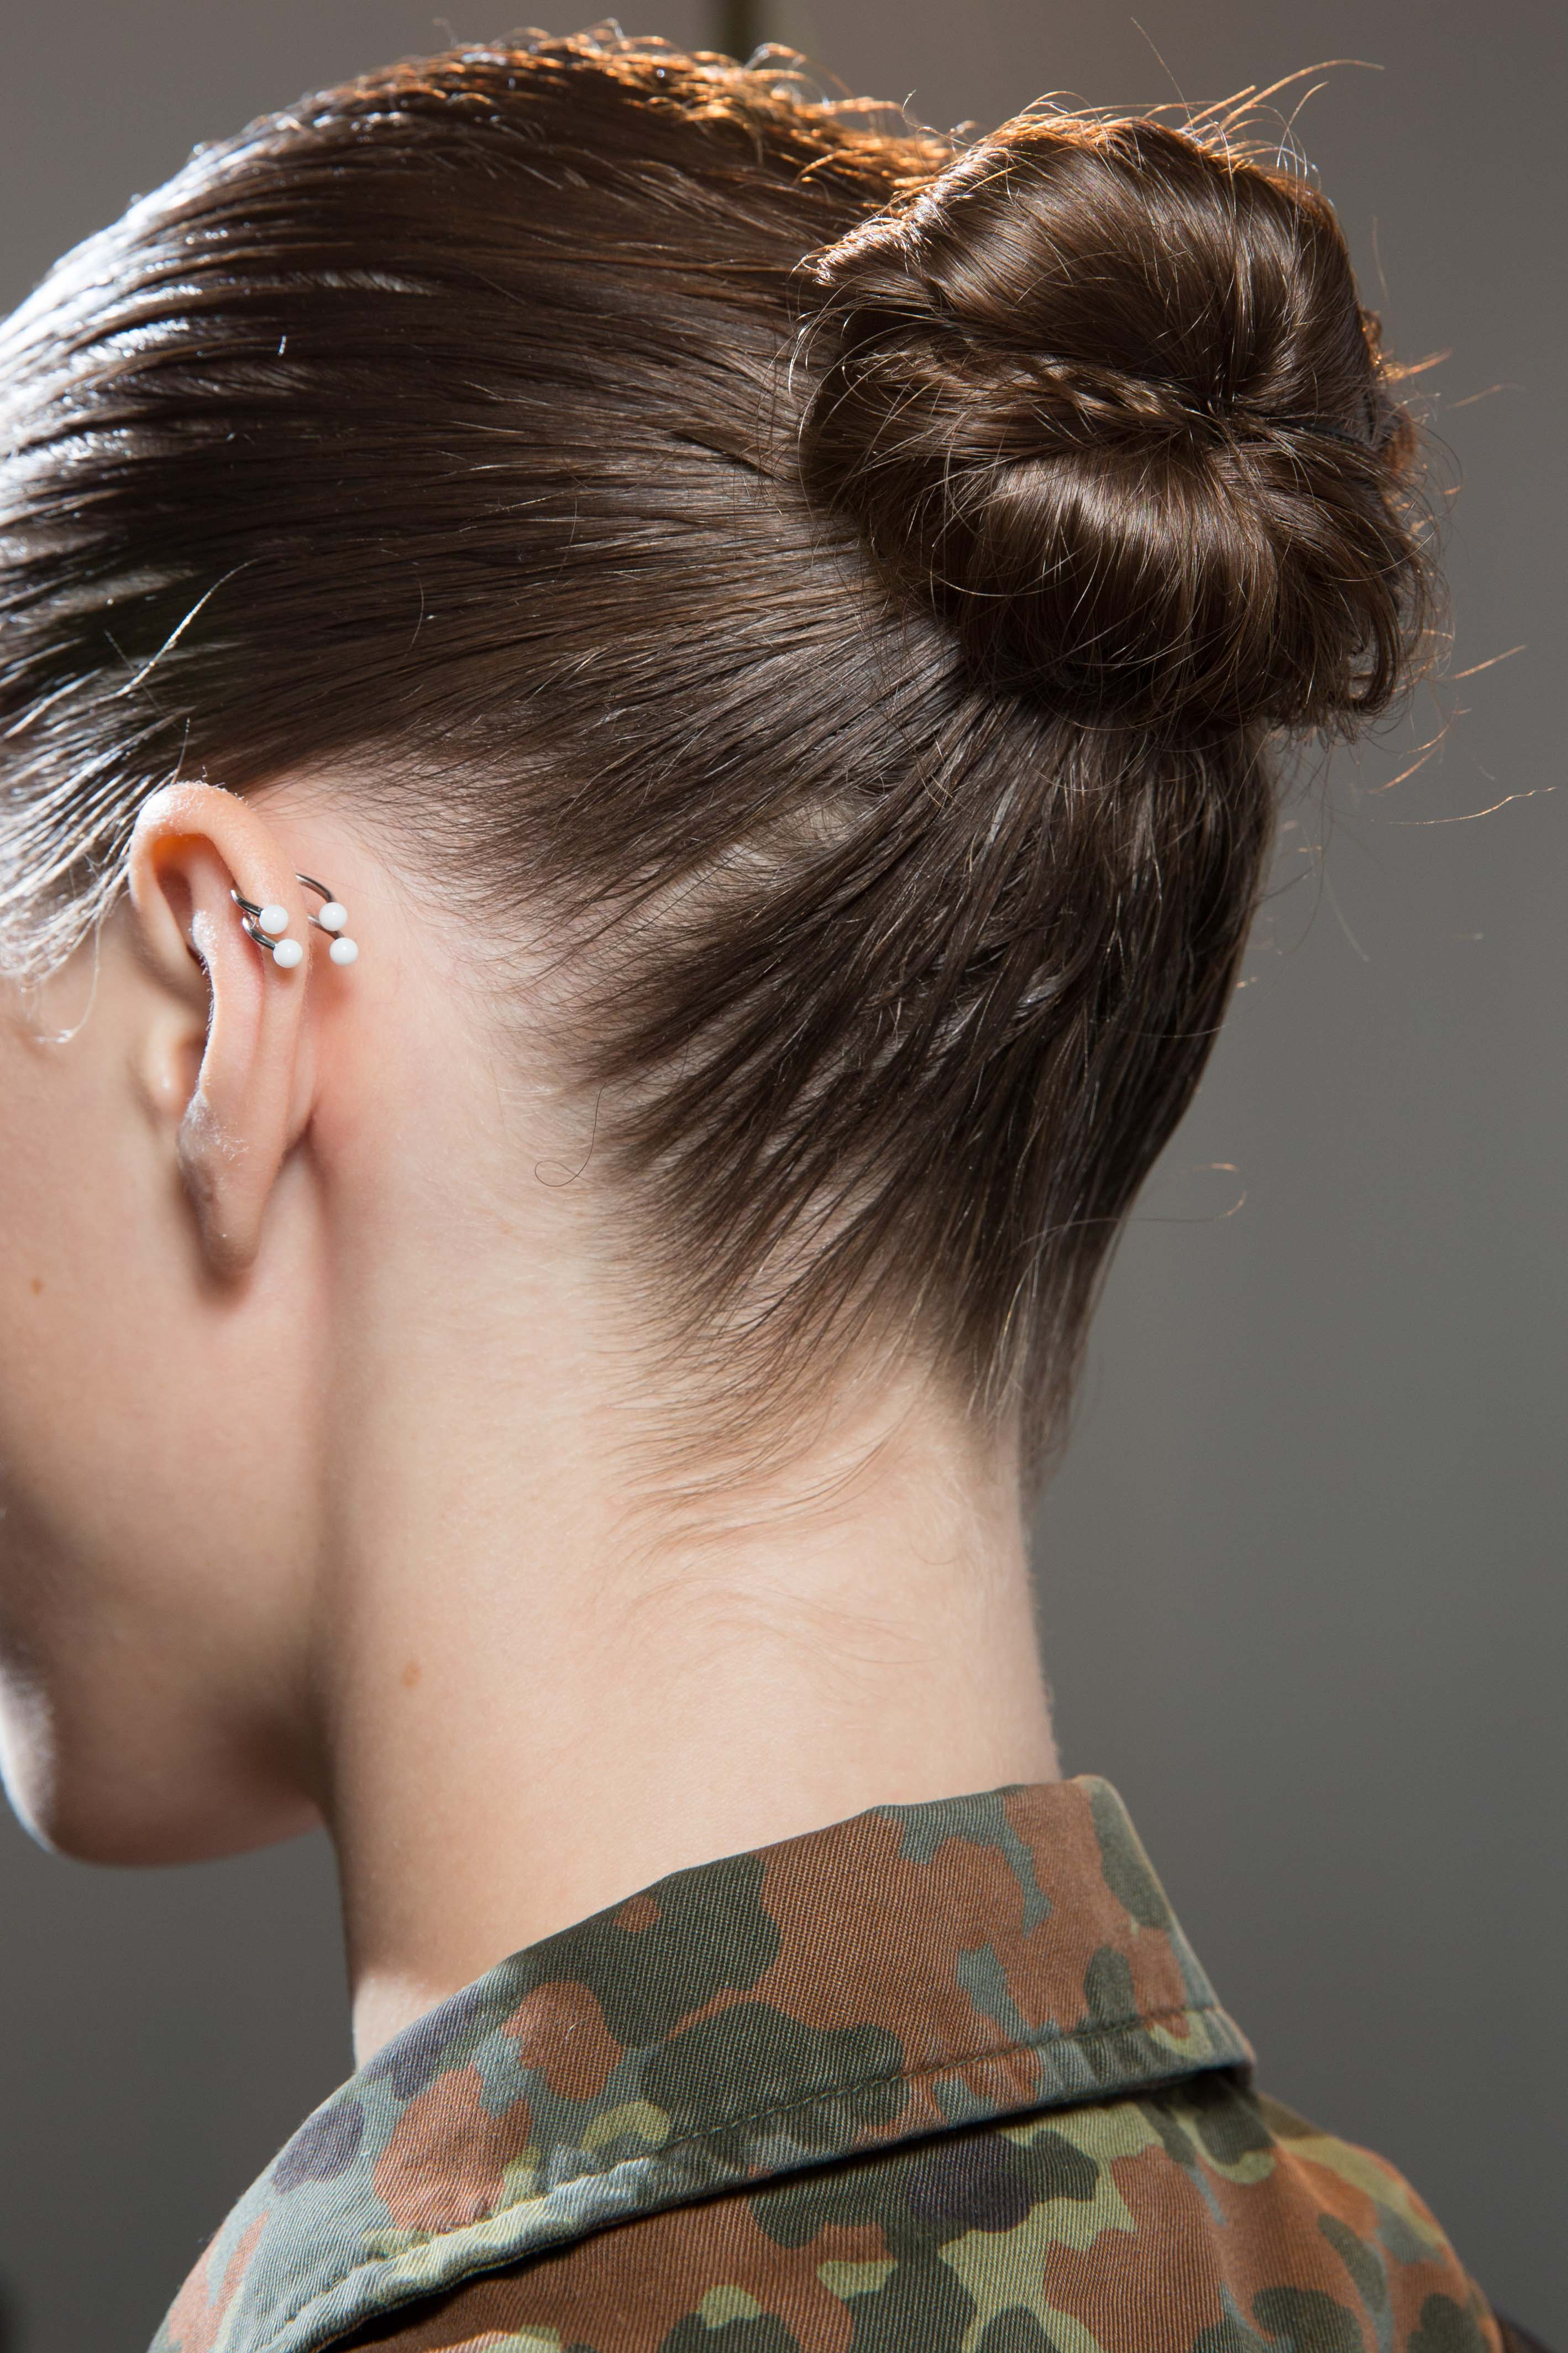 Simple updo ideas you can wear to prom. The ballerina bun.